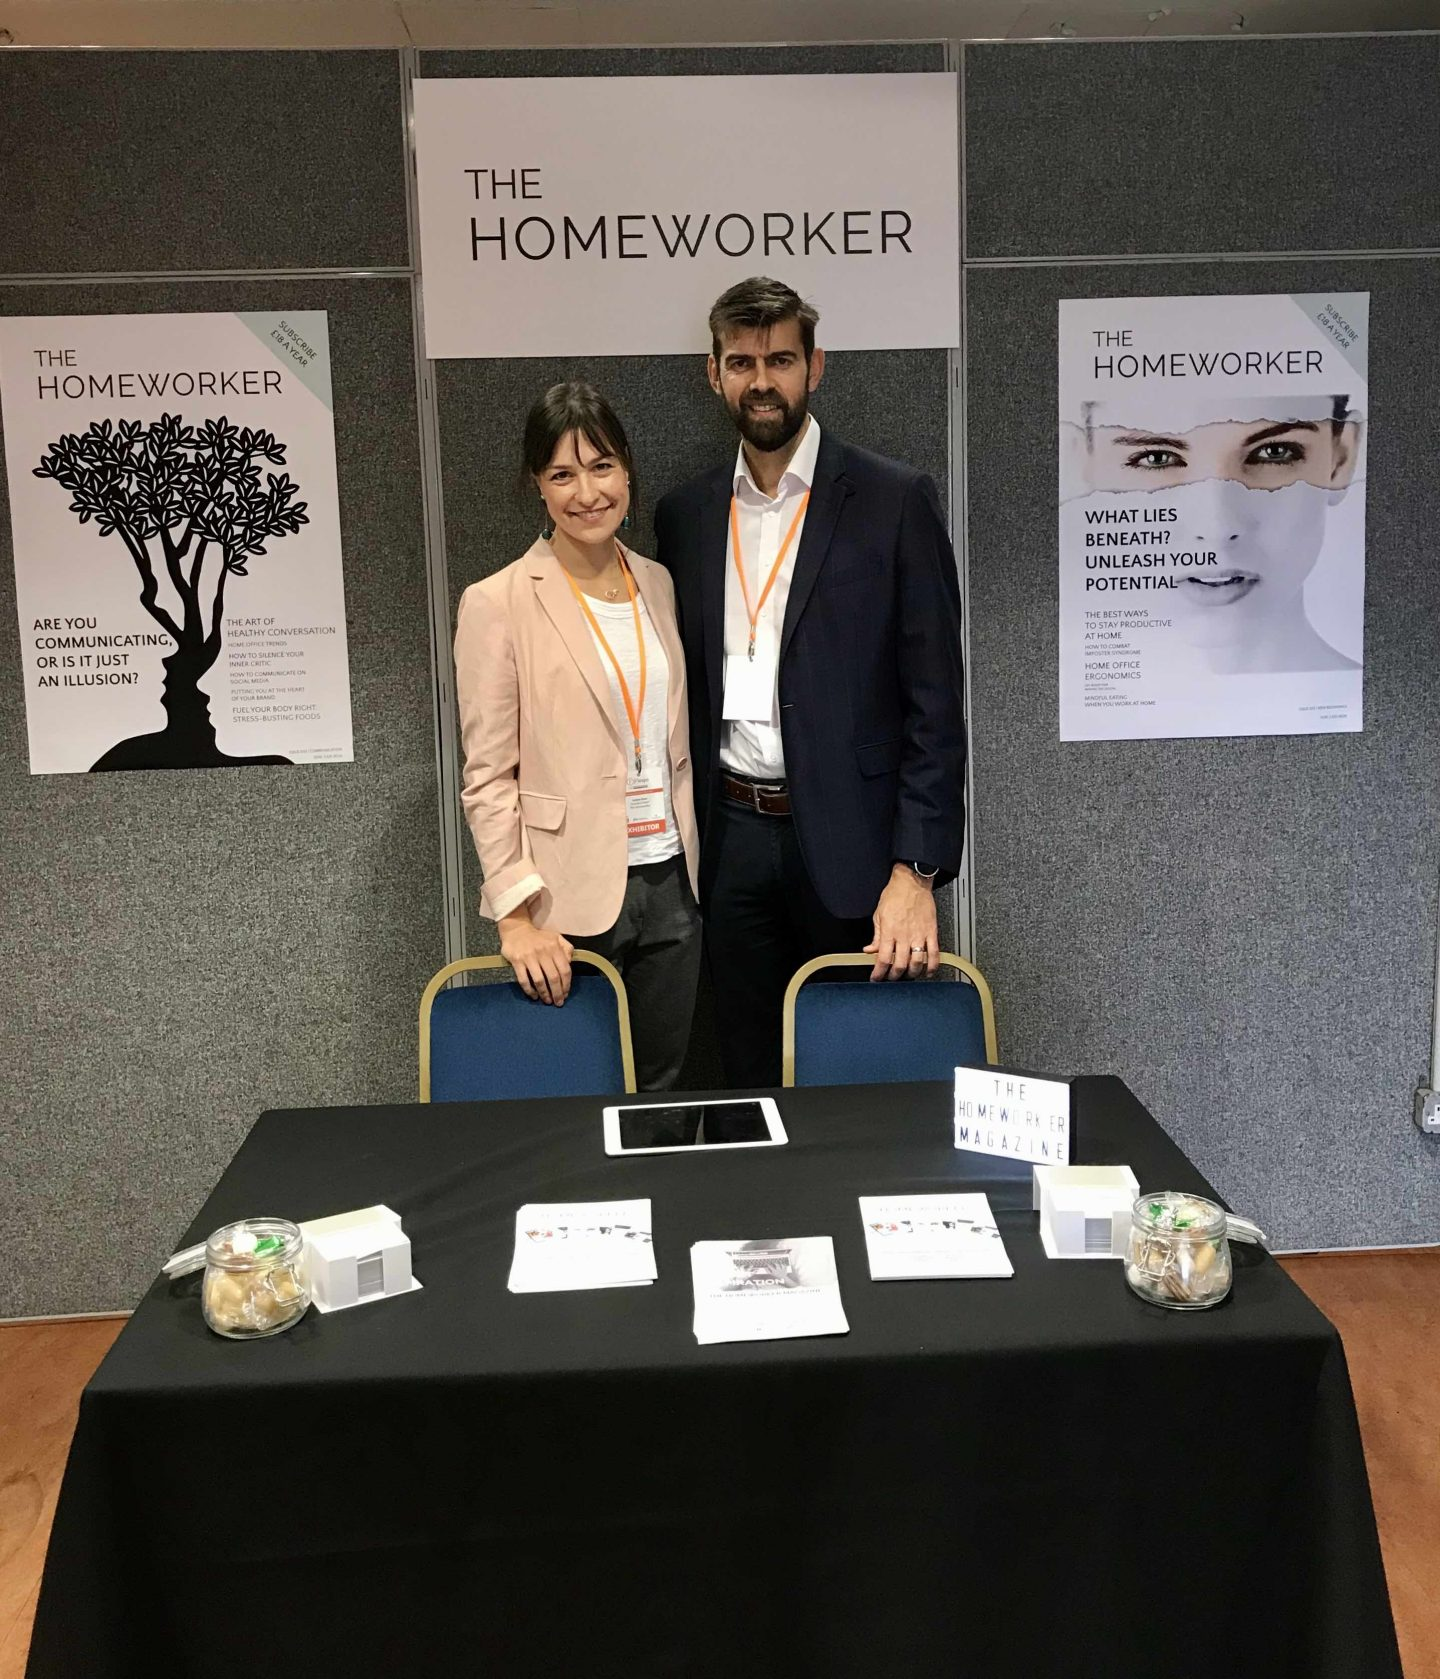 Louise Goss and James Edmondson with The Homeworker at Flexpo, flexible working, working from home support